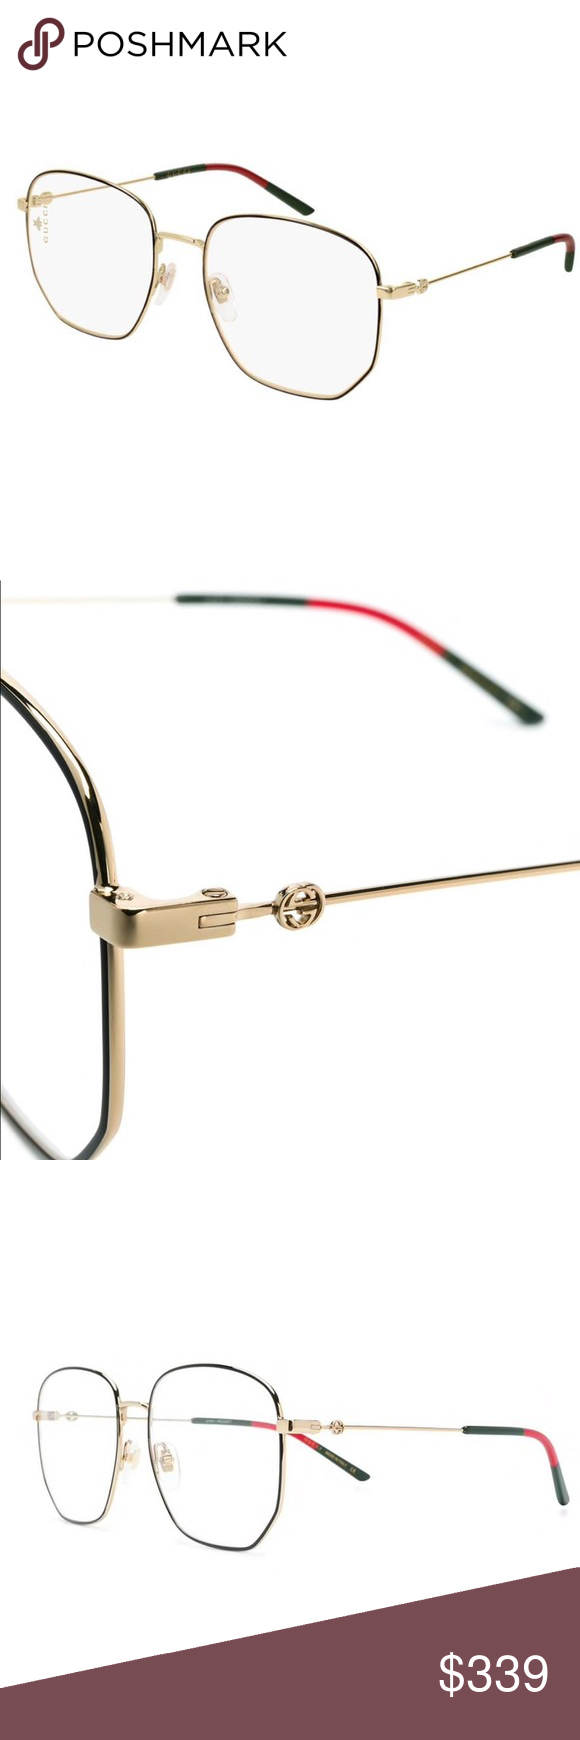 73be551d06a5 Gucci GG0396O Eyeglasses 🆕‼ Made from black and gold-tone acetate, these  hexagonal frame glasses from Gucci Eyewear feature straight arms with  curved ...